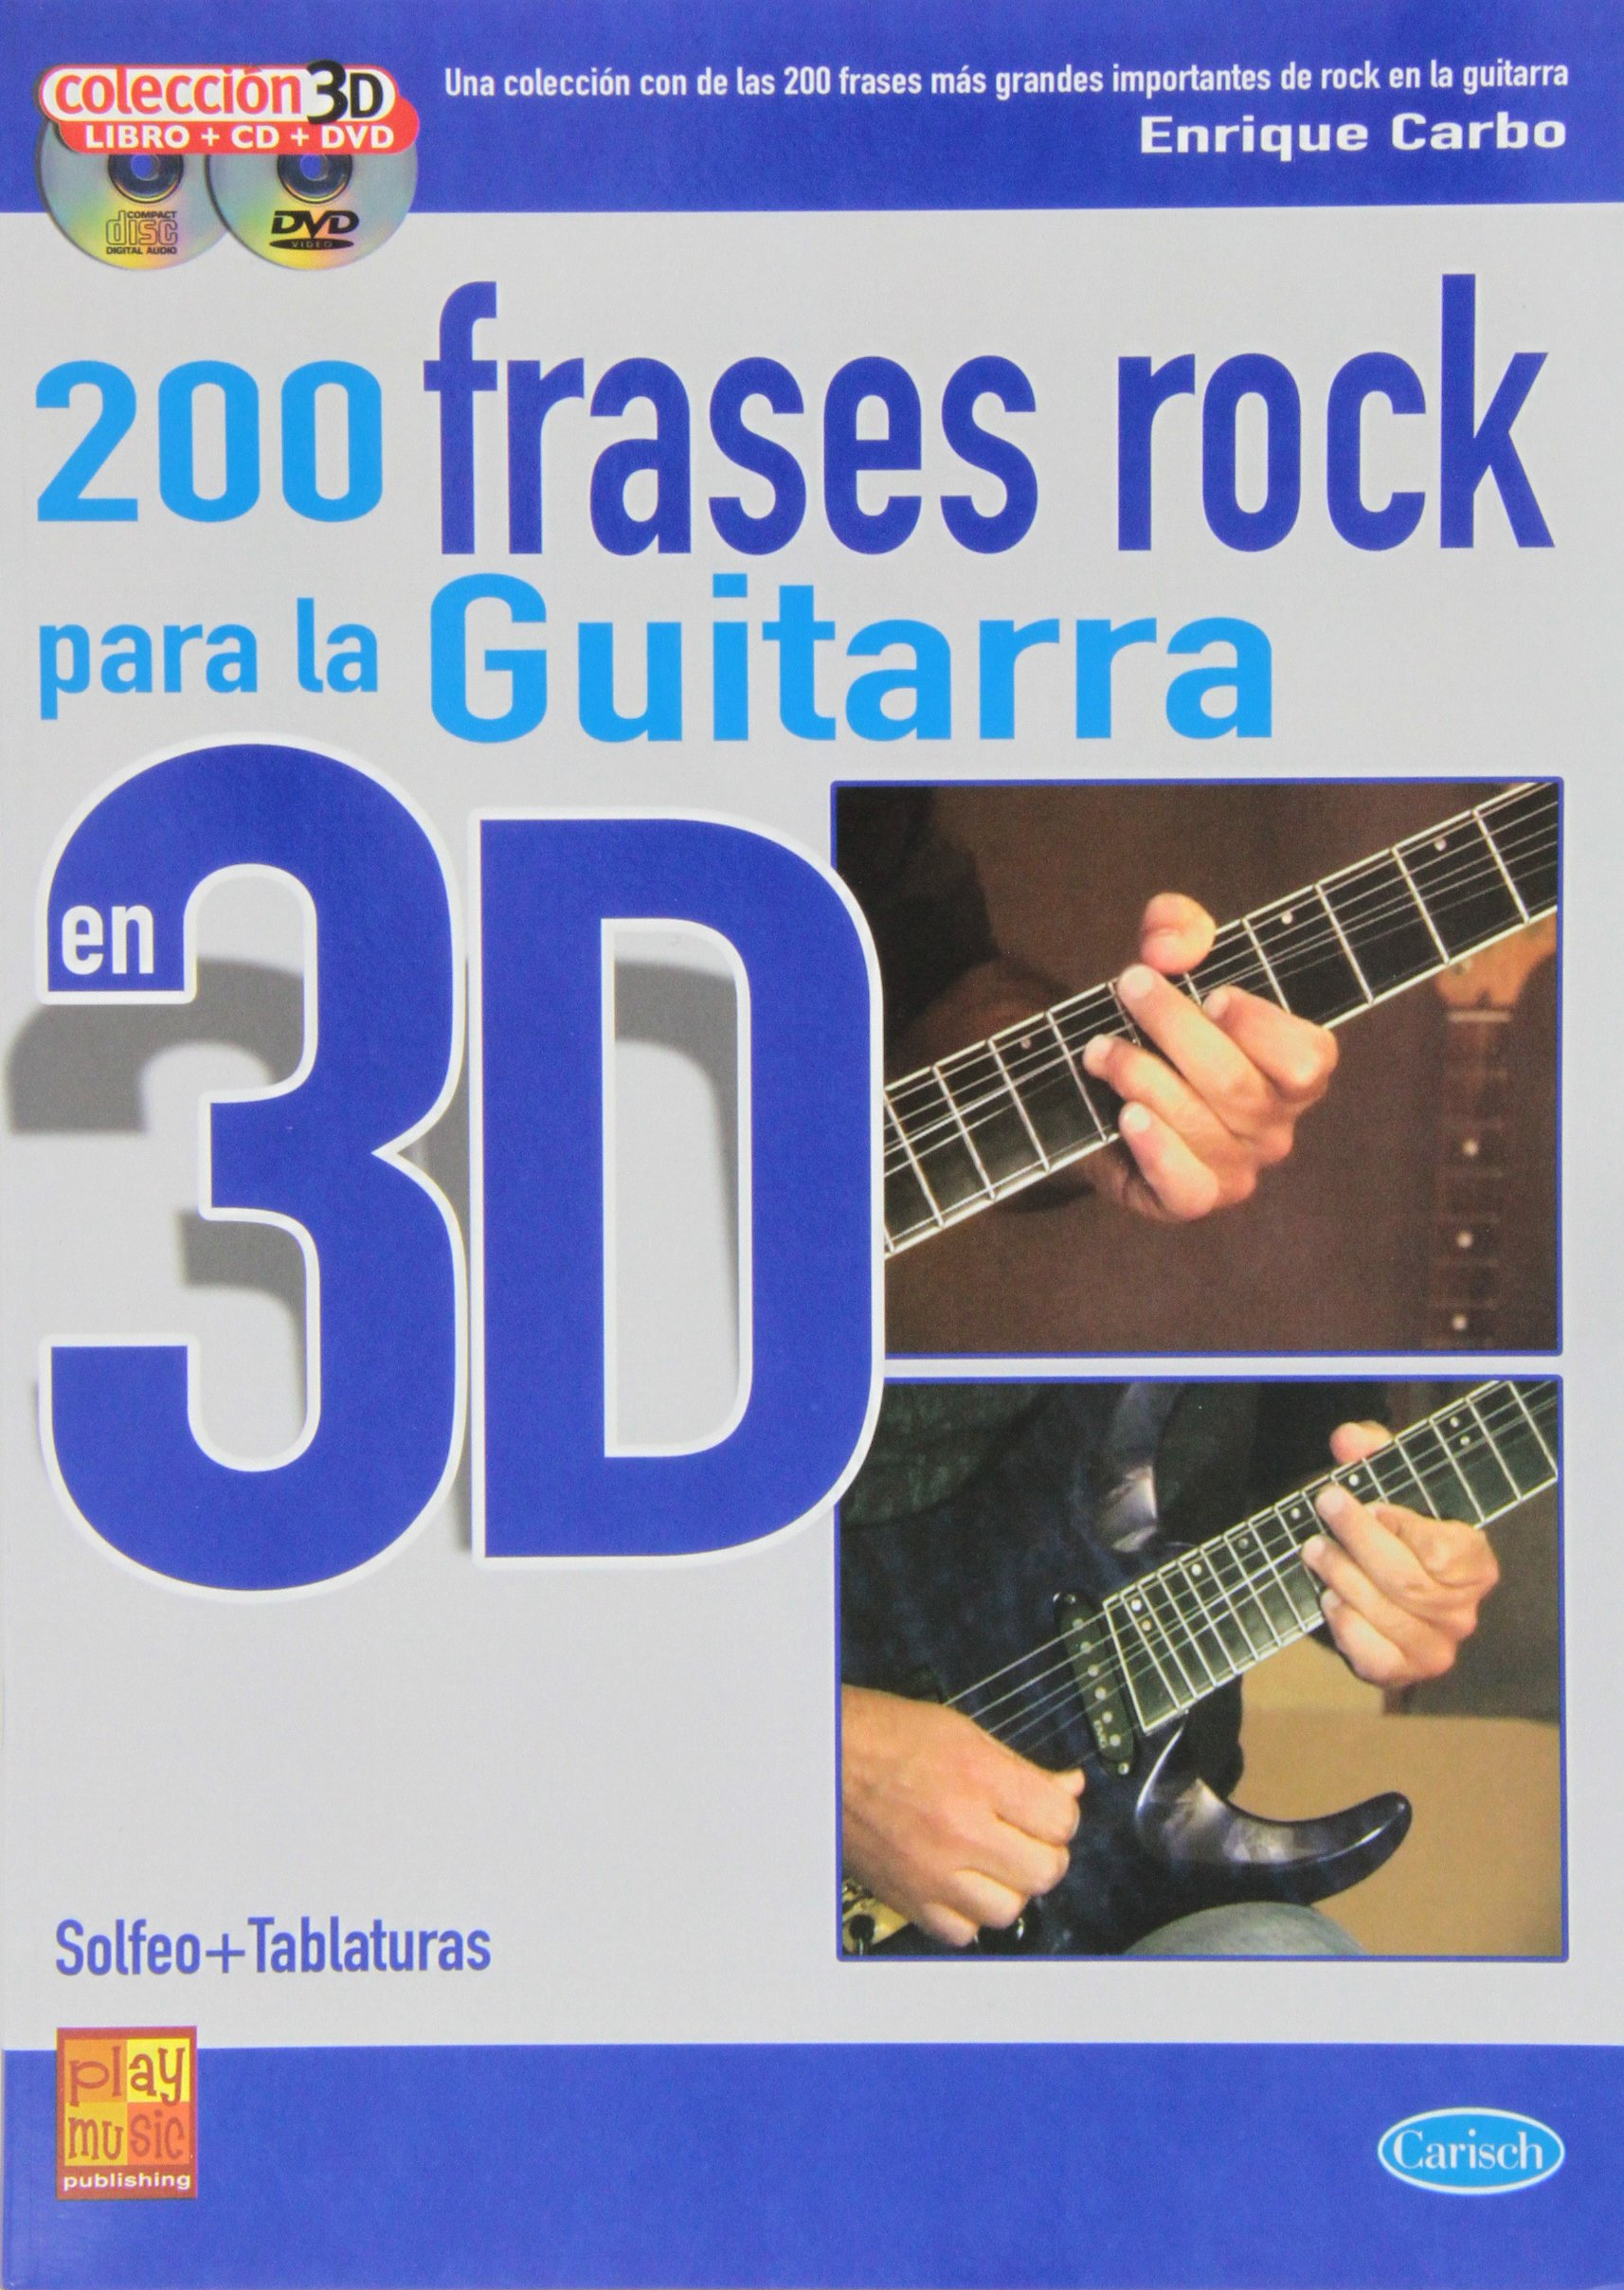 Download CARBO - Frases de Rock (200) para Guitarra en 3D (Inc.CD y DVD) PDF